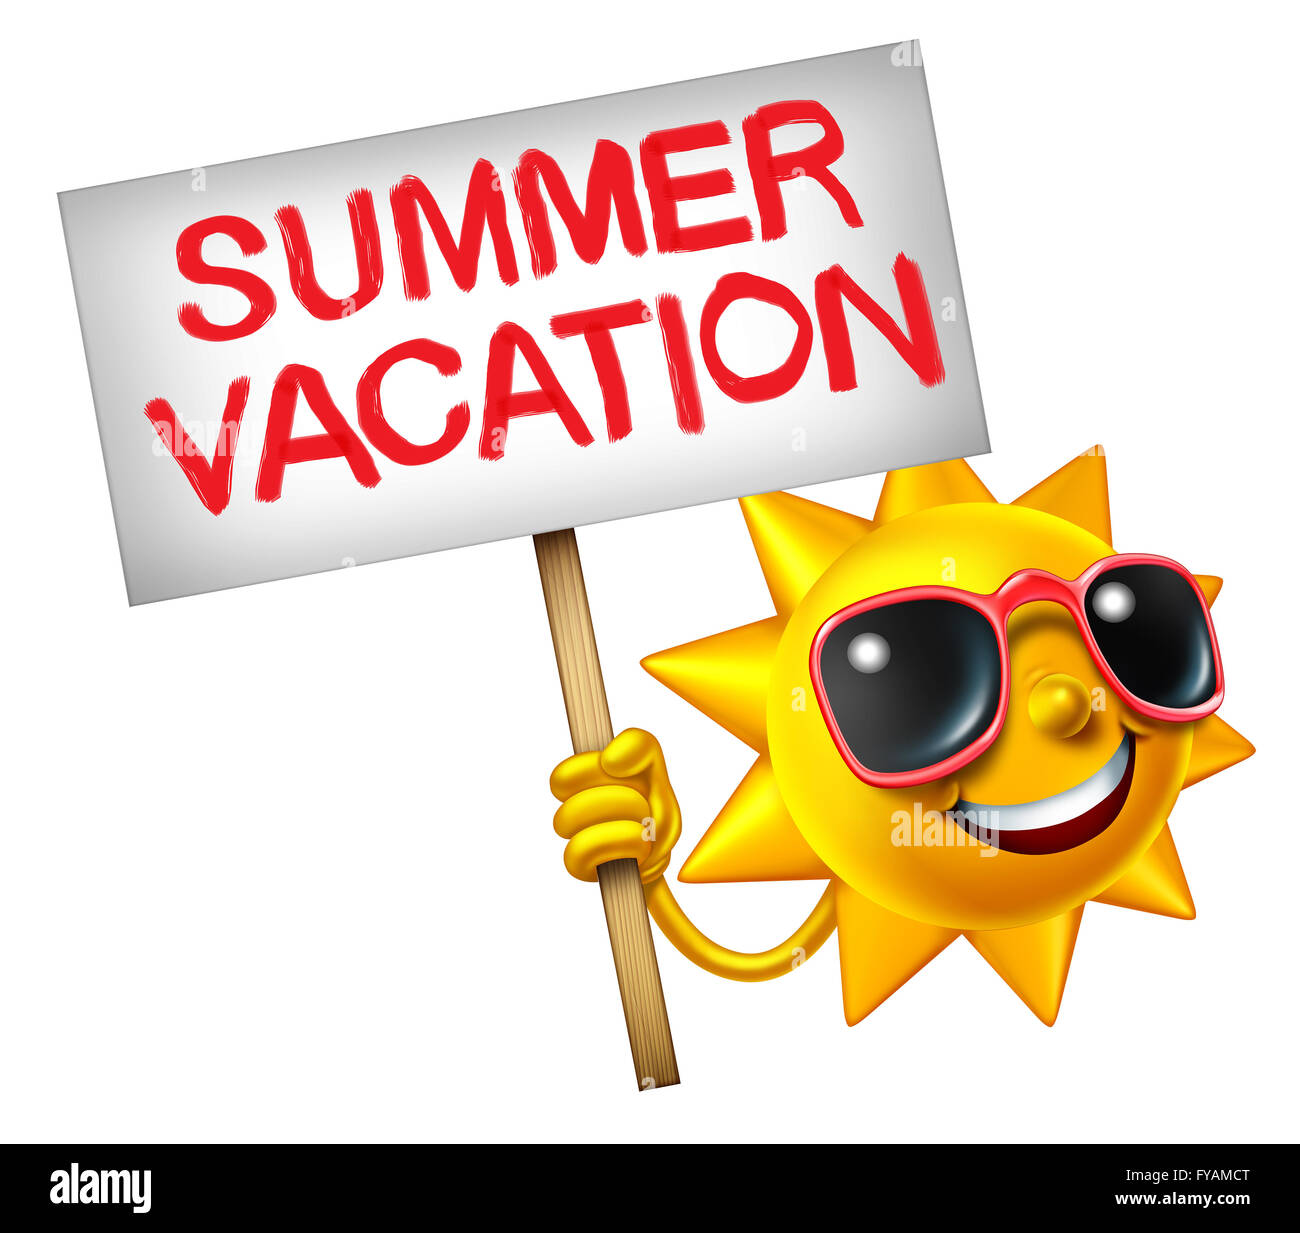 Summer vacation symbol as a hot sun character holding a sign with painted text as a travel icon for relaxing in - Stock Image